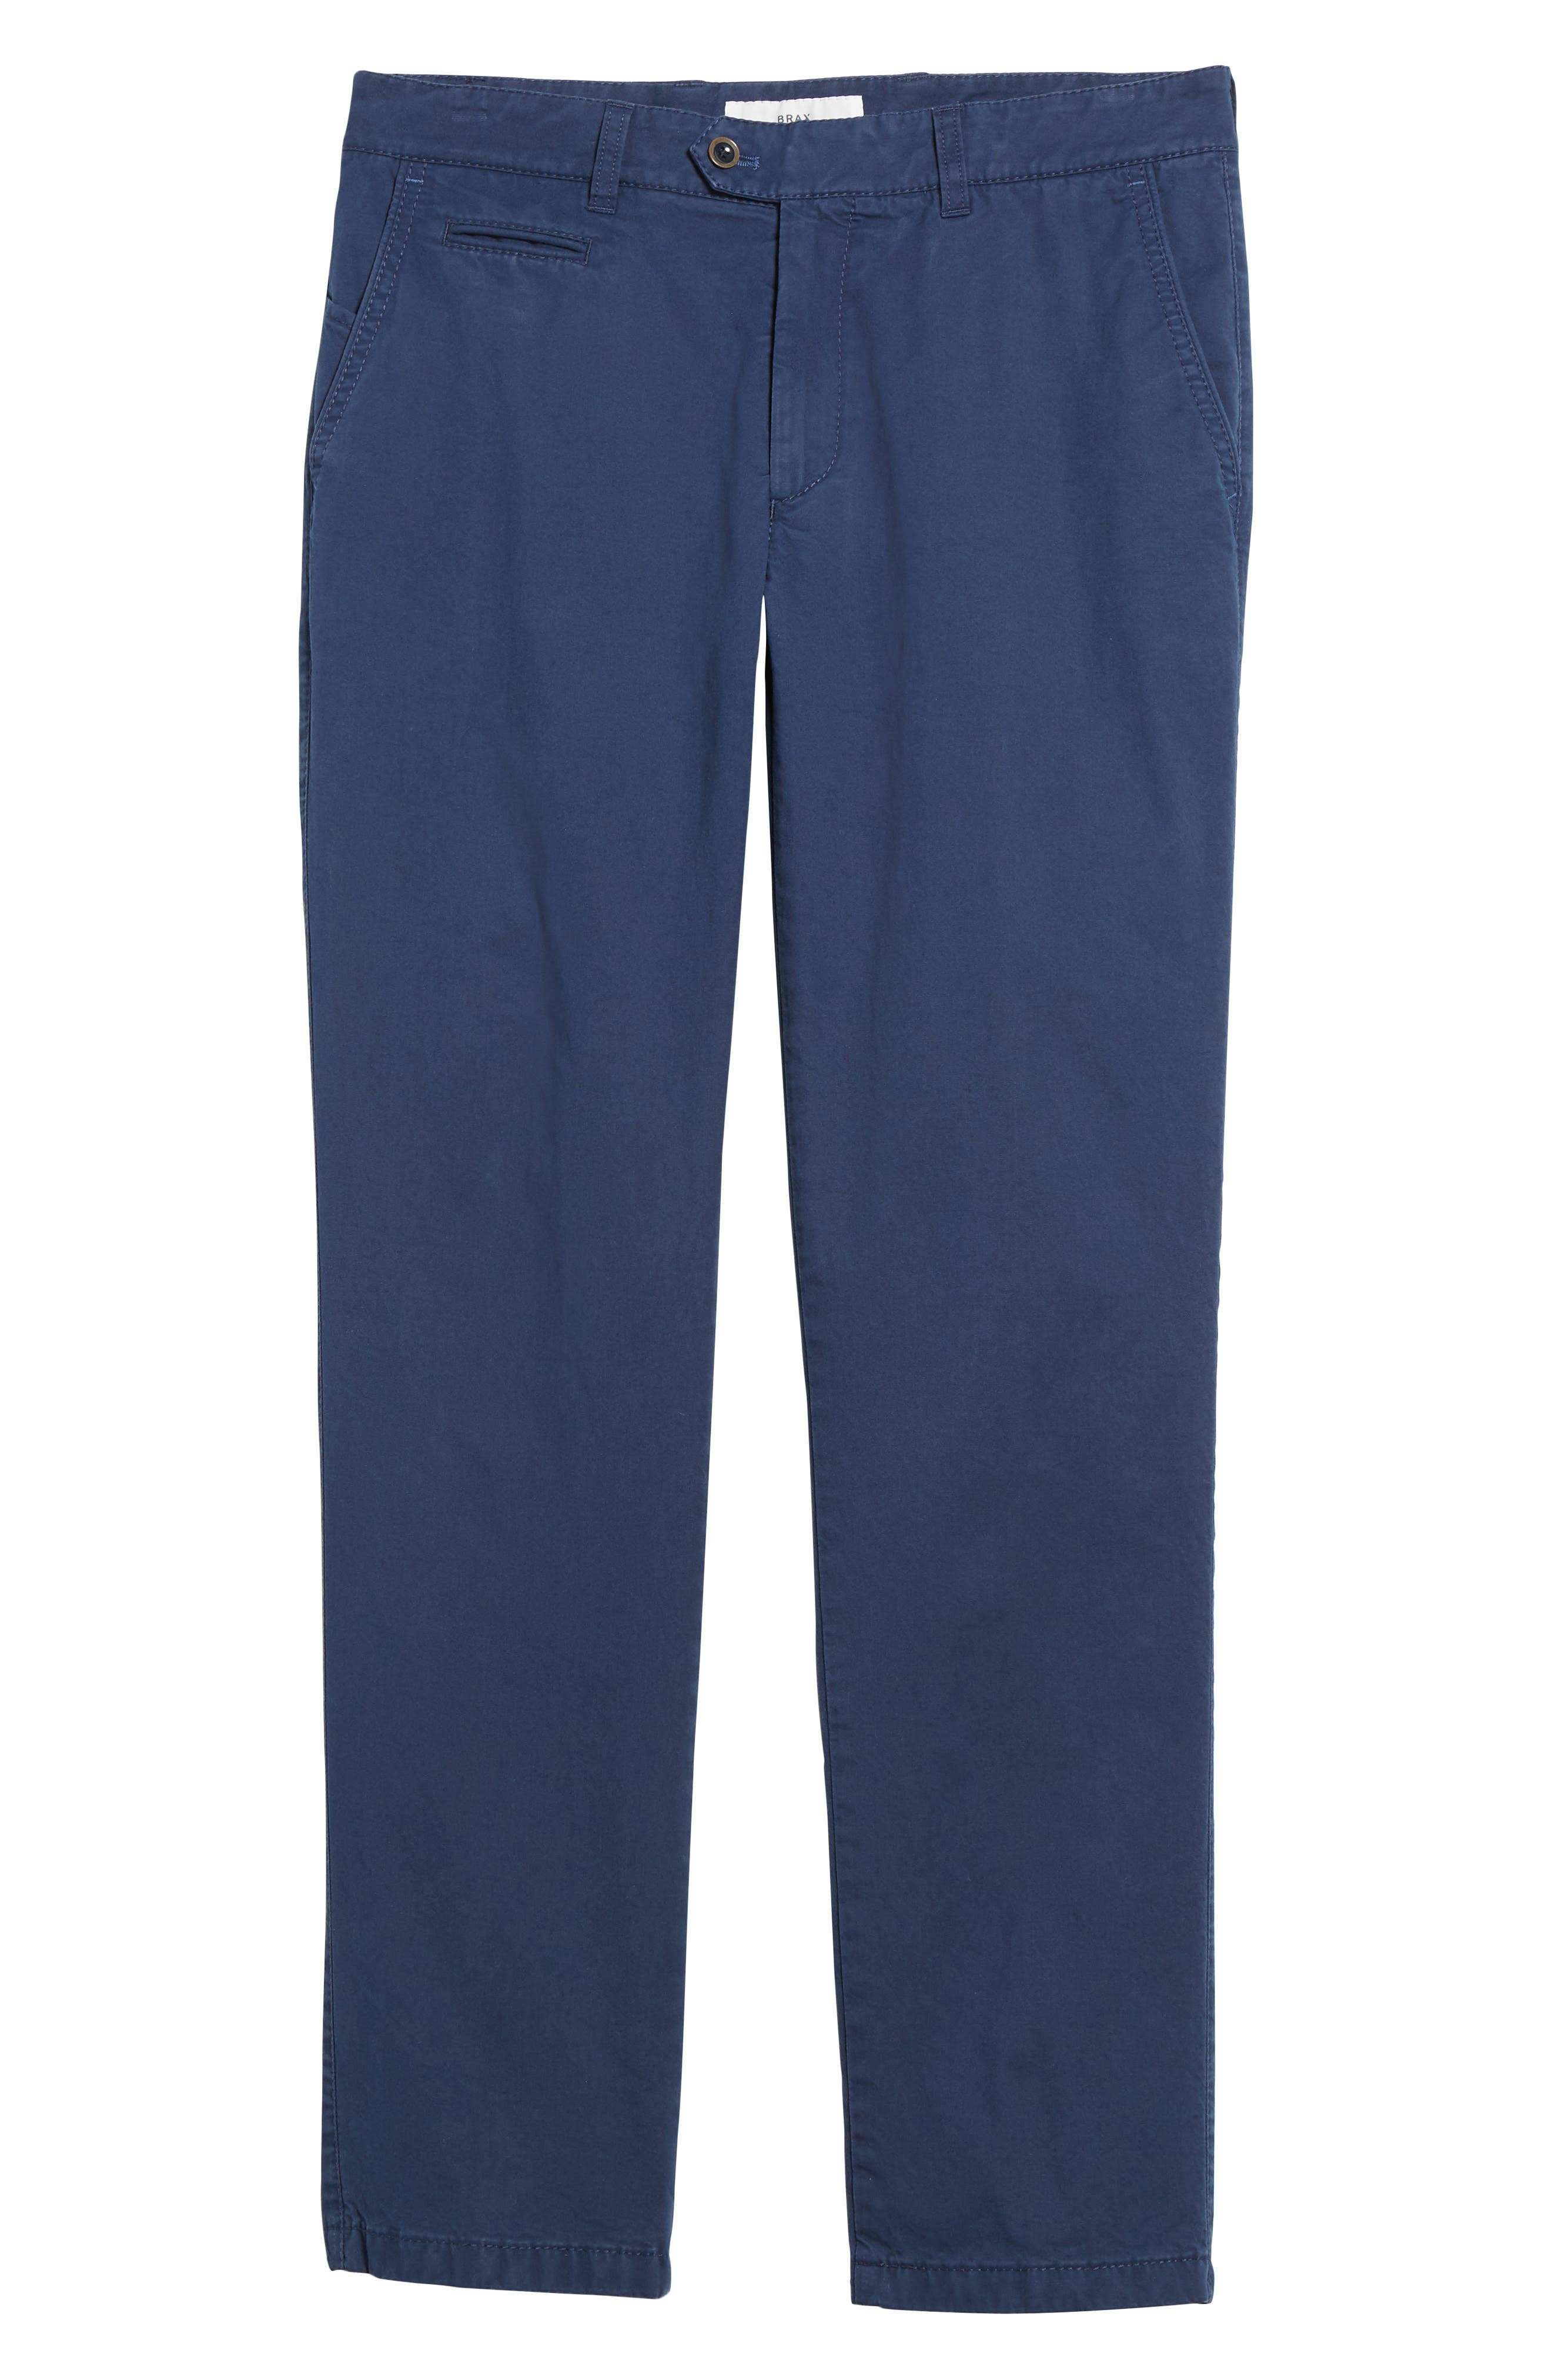 Everest Flat Front Chinos,                             Alternate thumbnail 6, color,                             Pacific